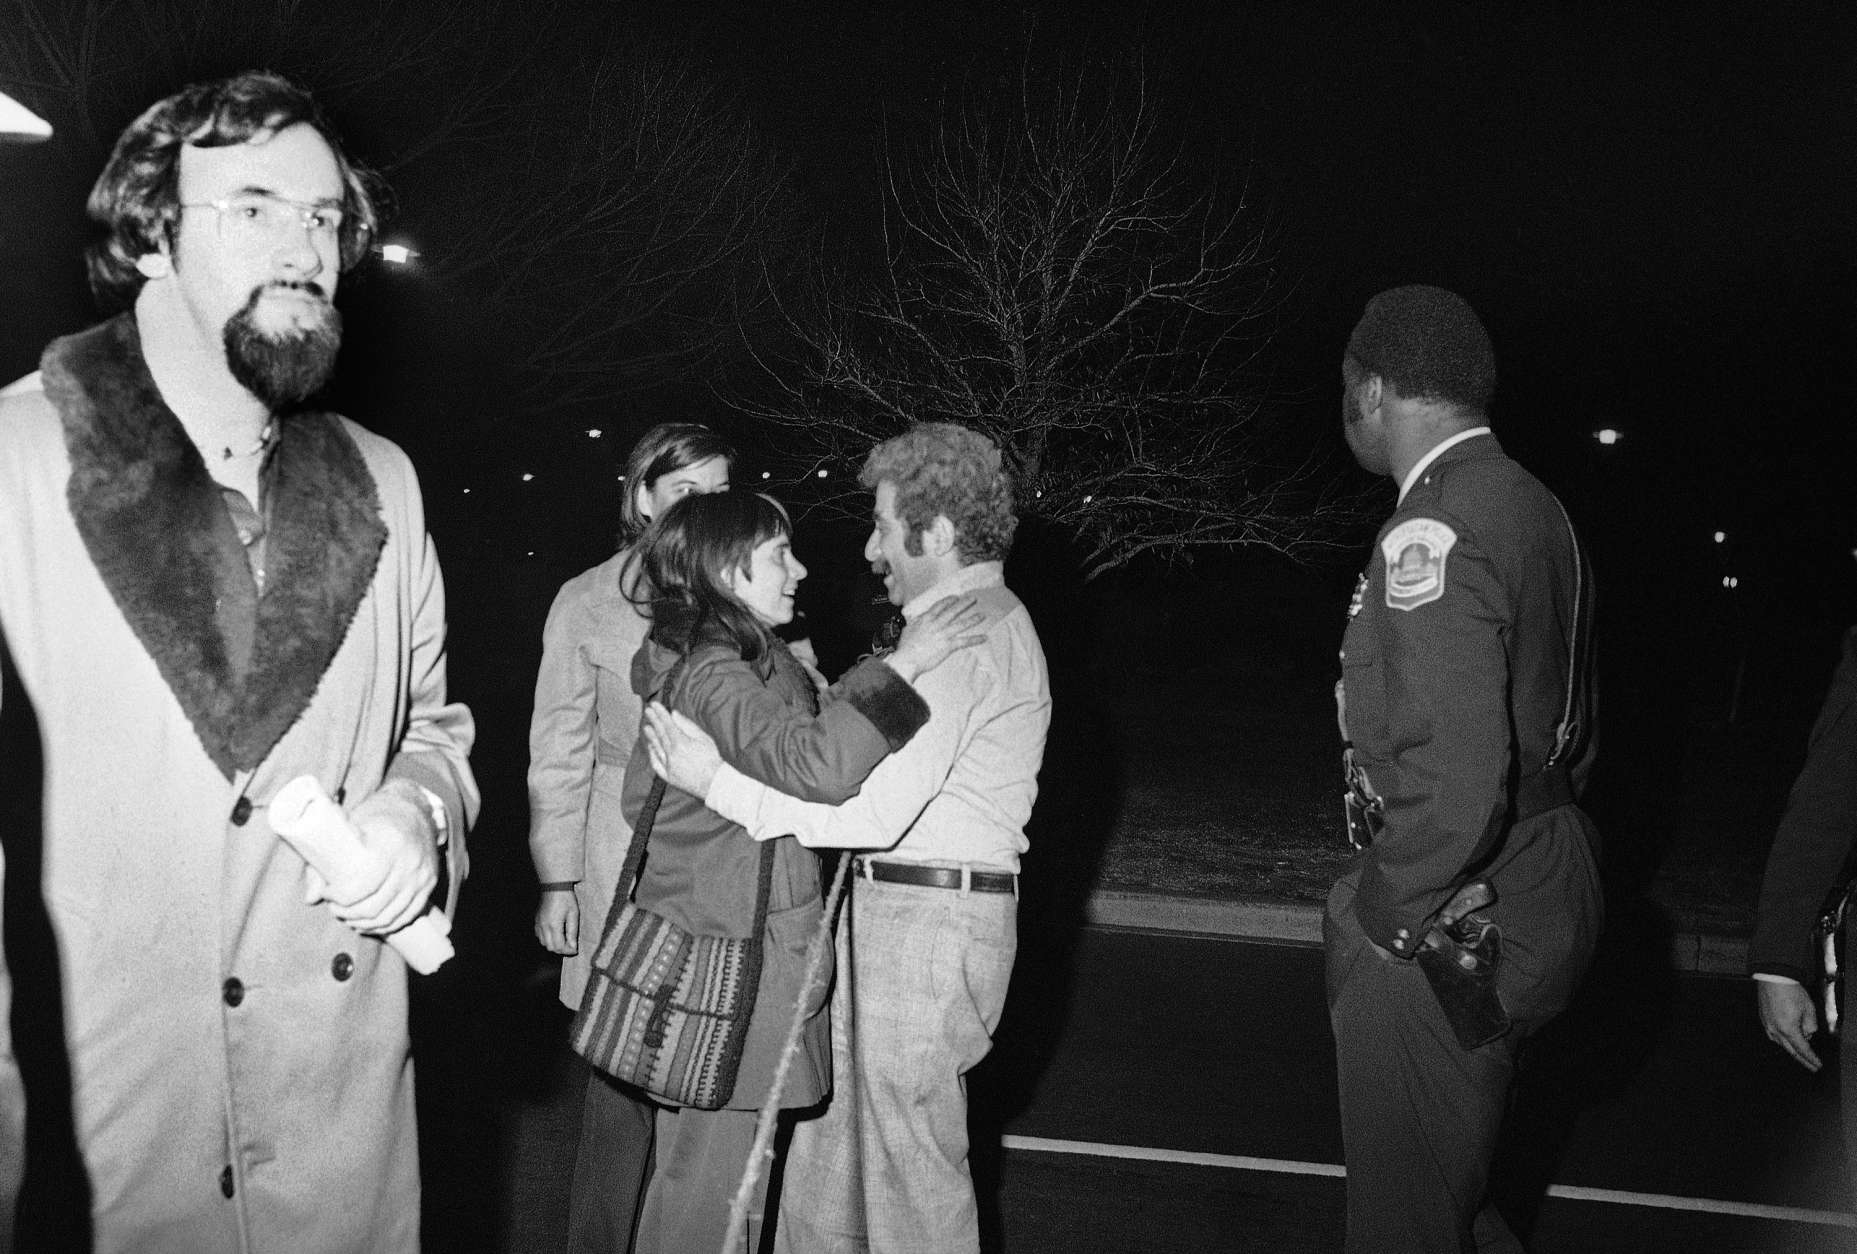 A man spots and embraces a woman who was among several hostages sent to George Washington hospital following their release by gunmen in Washington on Friday, March 11, 1977. The terrorists held up to 135 persons in three different buildings. (AP Photo)